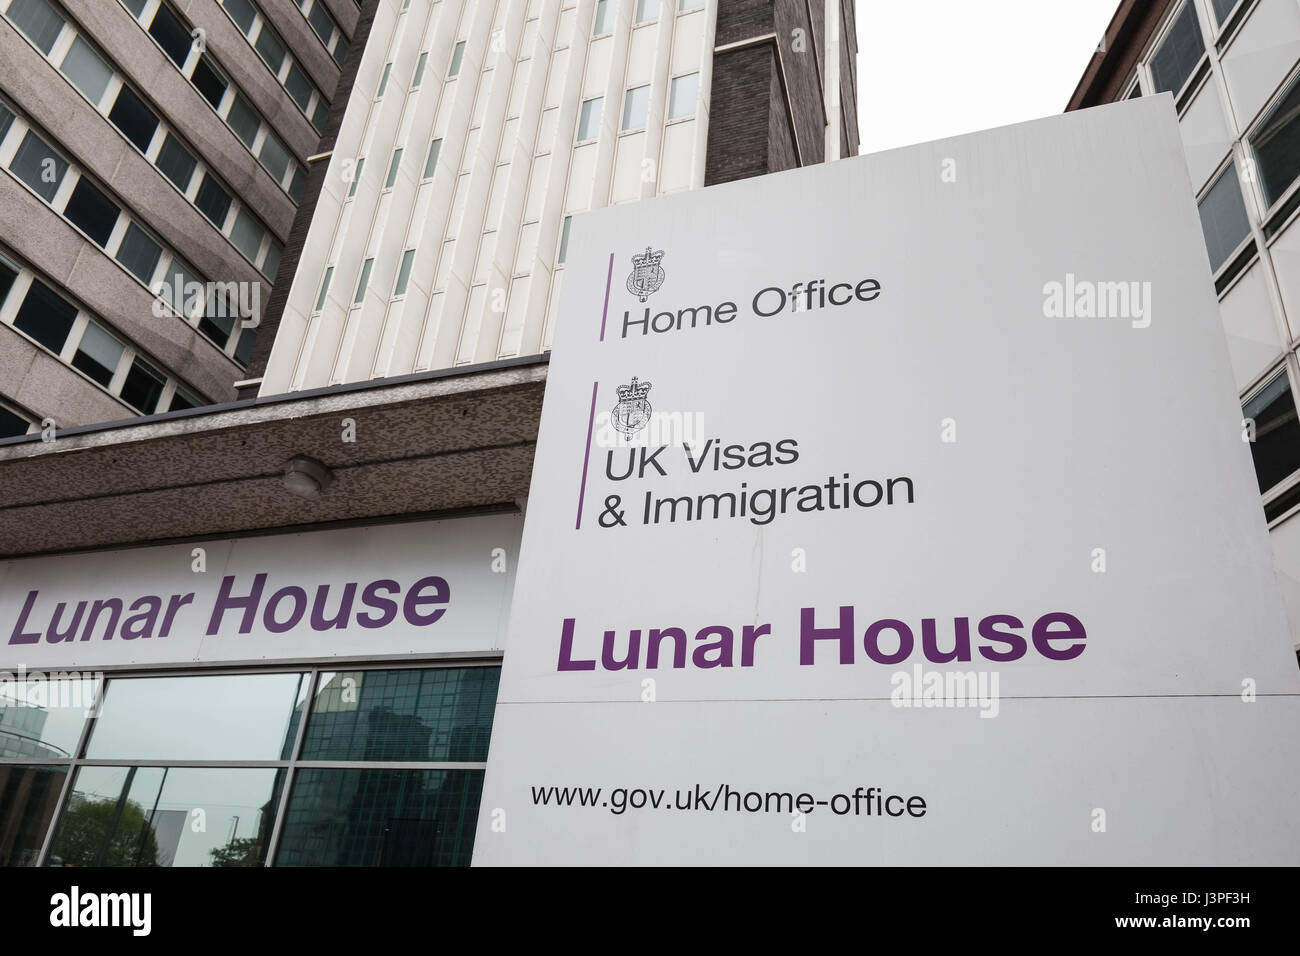 The Home Office UK Visas & Immigration Office at Lunar House in ...